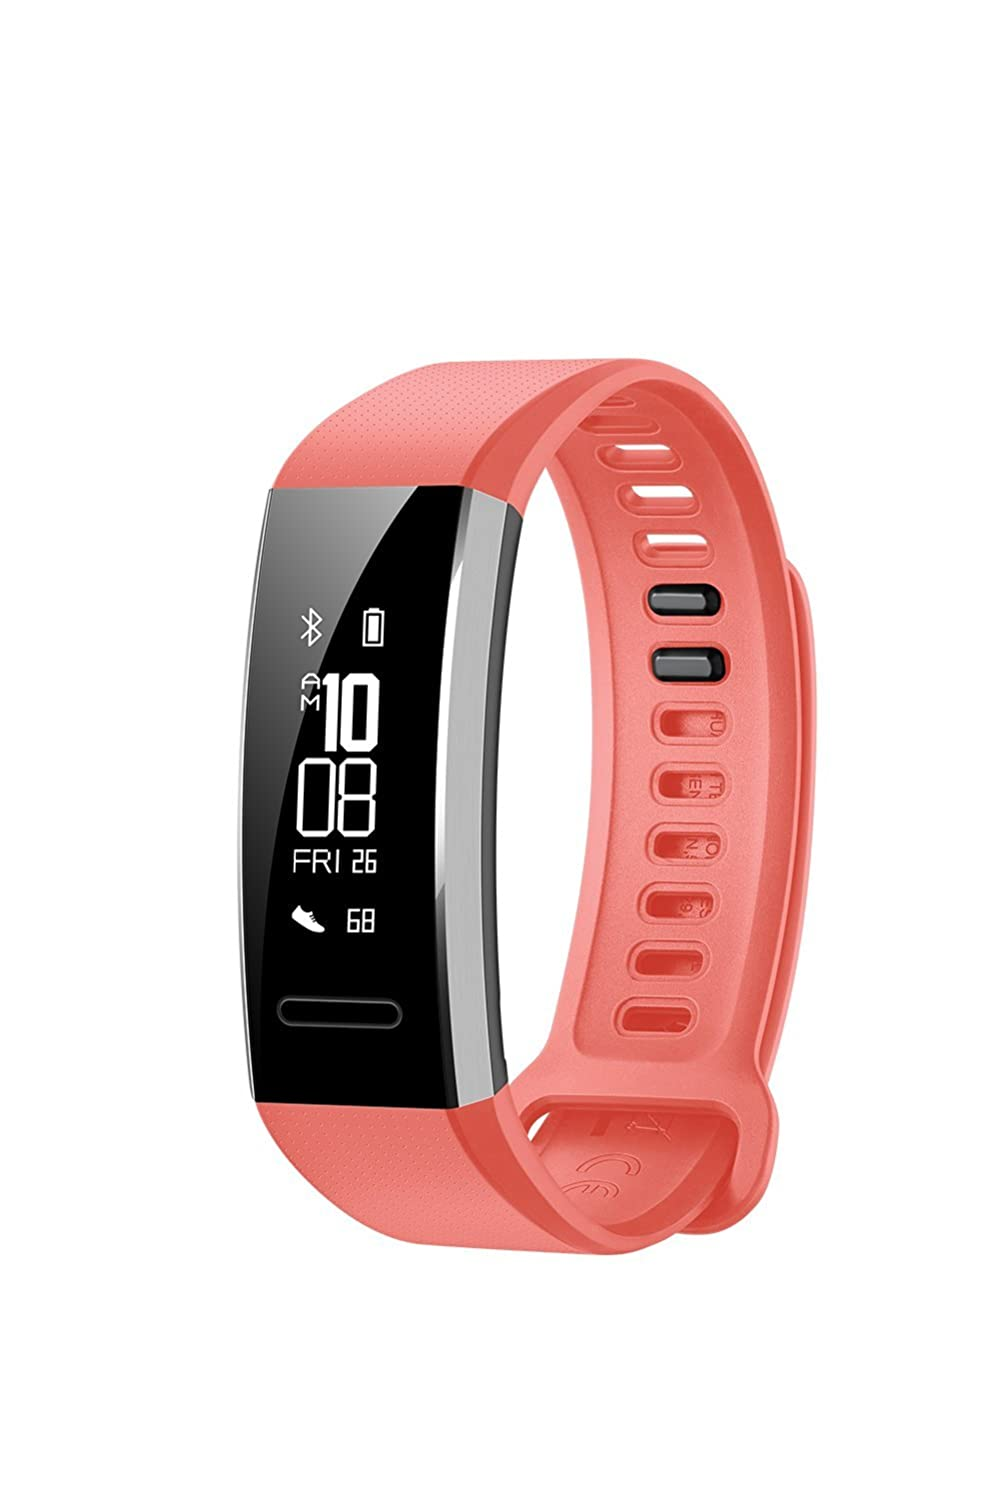 Huawei Band 2 Pro All-in-One Activity Tracker Smart Fitness Wristband GPS Multi-Sport Mode Heart Rate Sleep Monitor 5ATM Waterproof, Red US Warranty